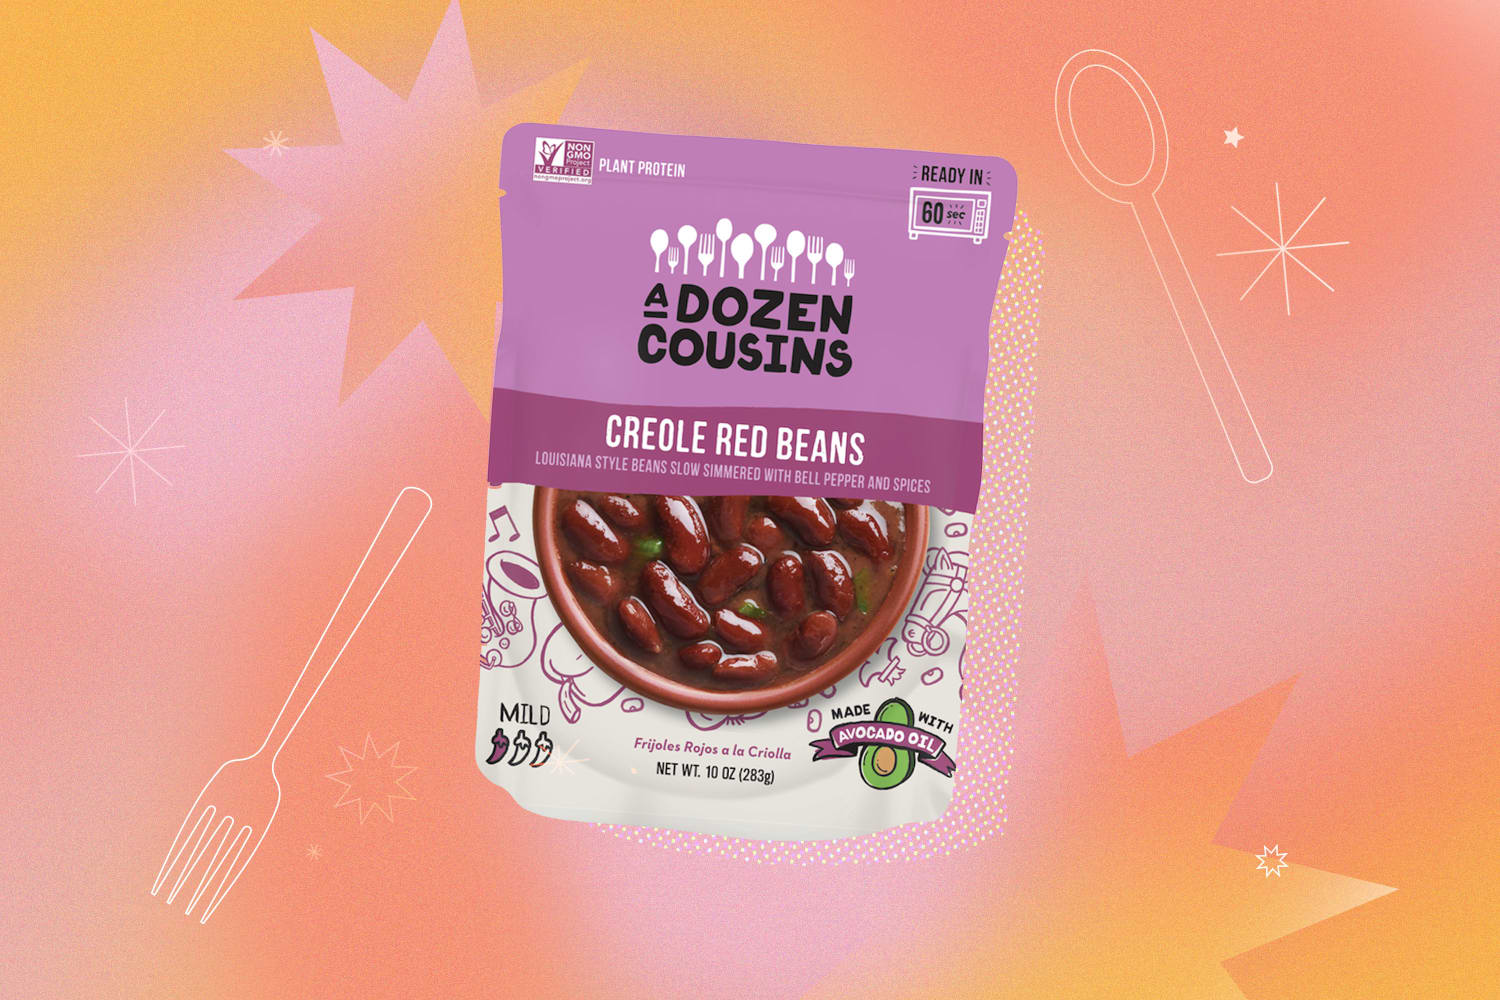 A Dozen Cousins' Limited-Edition Creole Red Beans Pay Homage to a Staple of Louisiana Cuisine